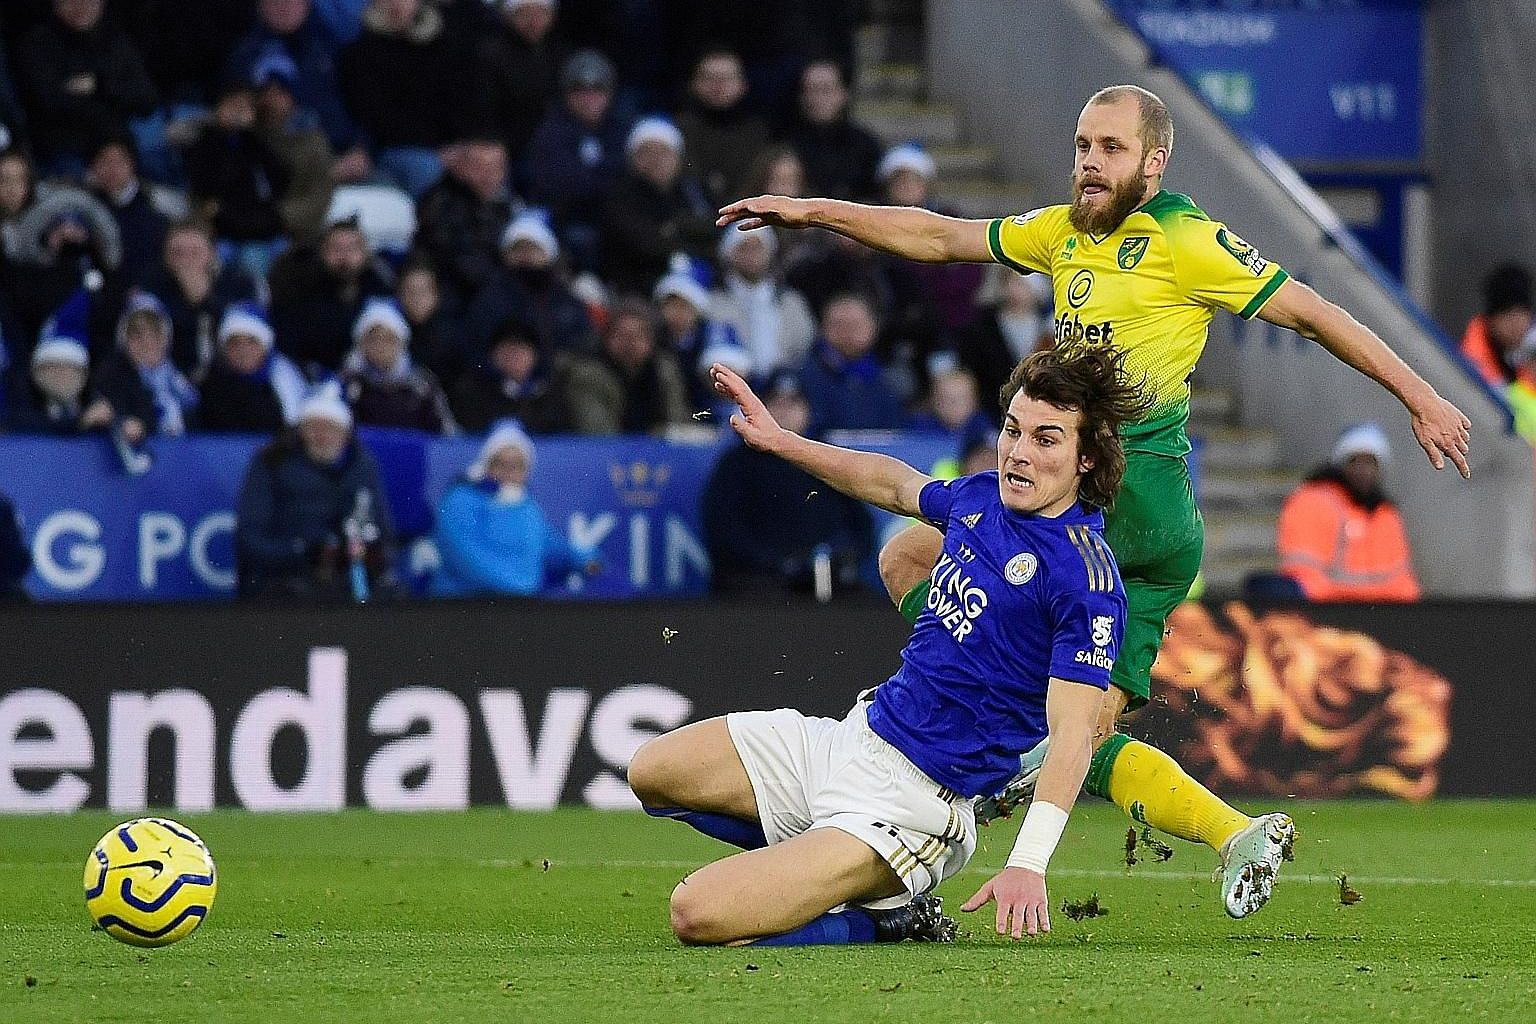 Striker Teemu Pukki putting Norwich ahead against Leicester in their Premier League match at the King Power Stadium on Saturday. The Finland international played till the end of the 1-1 draw despite a broken toe.